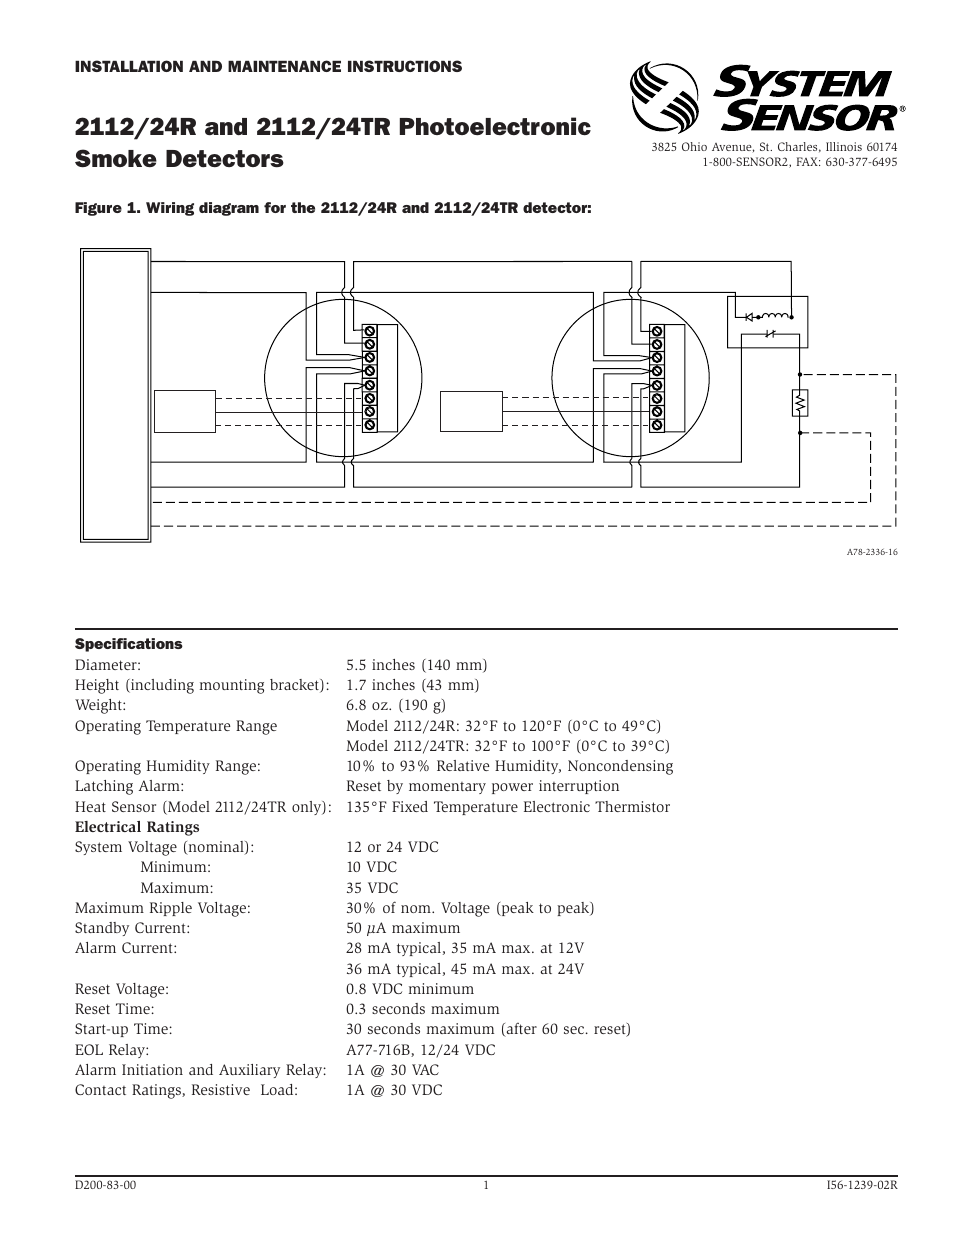 system sensor 2112_24r and 2112_24tr photoelectronic page1 system sensor 2112_24r and 2112_24tr photoelectronic user manual 5R55E Transmission Wiring Diagram at bayanpartner.co